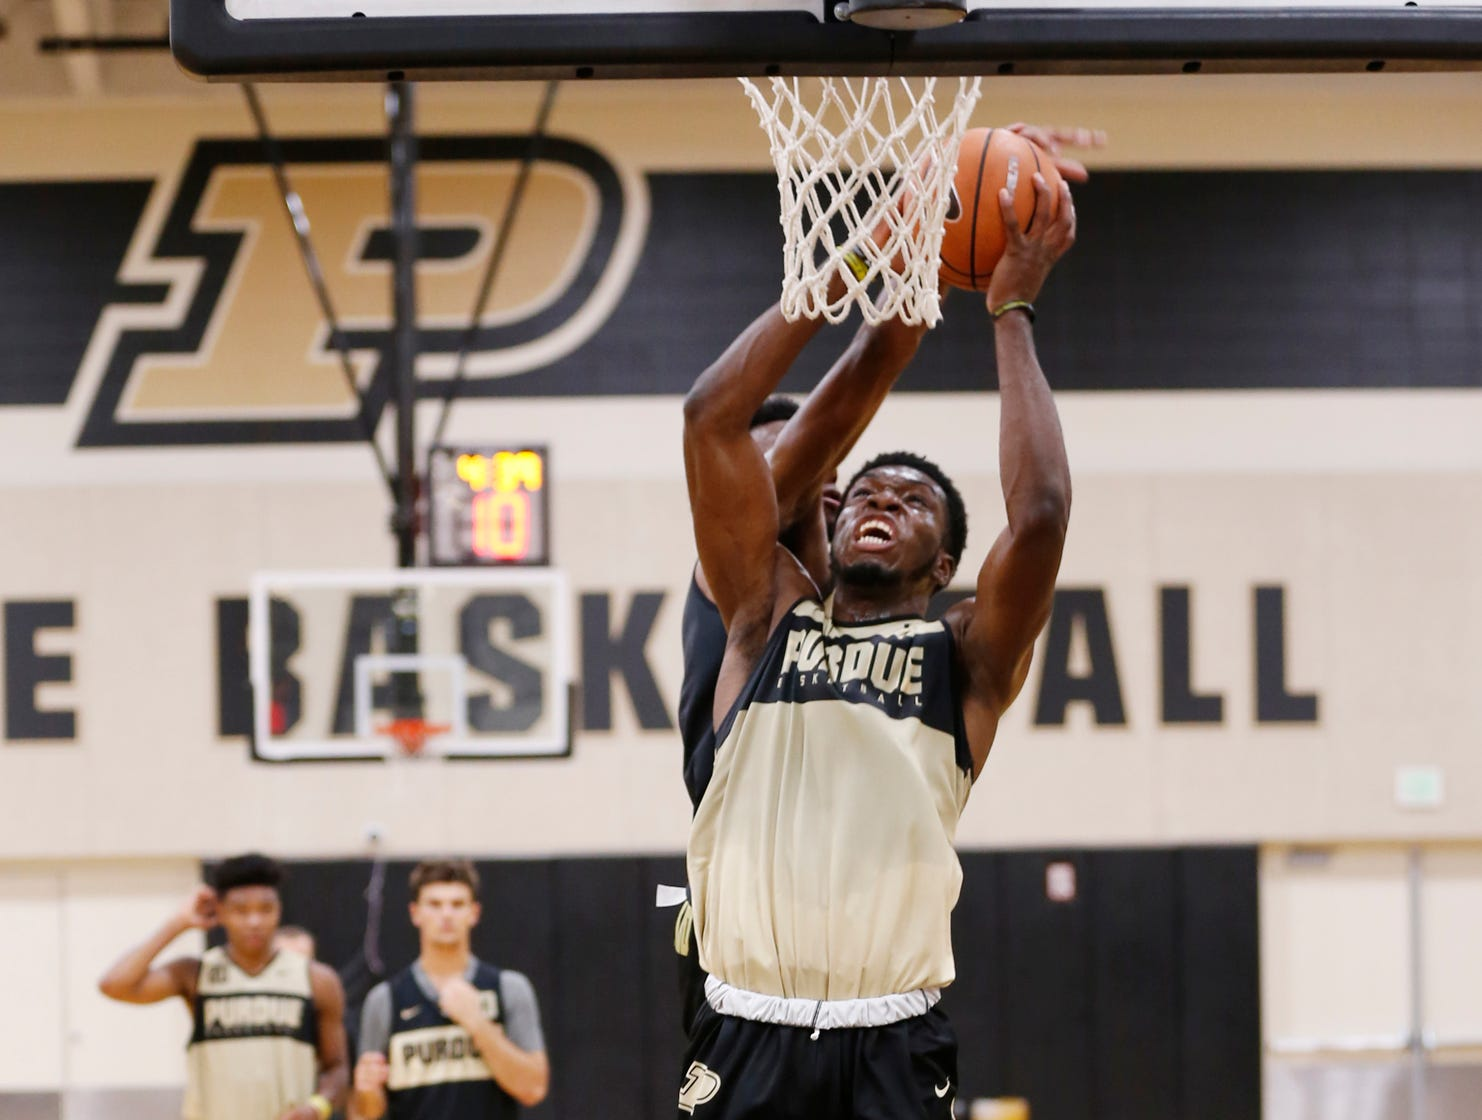 Emmanuel Dowuona with a drive to the basket during the first official practice of the season for Purdue men's basketball Tuesday, September 25, 2018, at Cardinal Court in Mackey Arena.